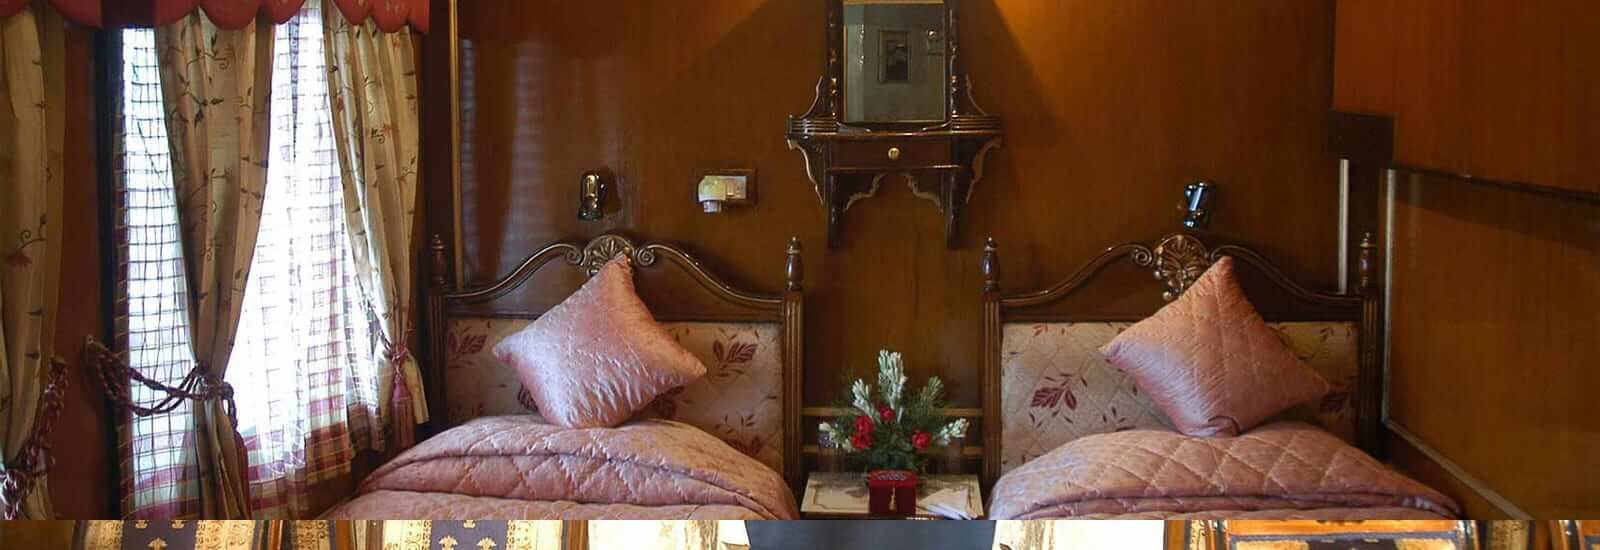 Palace on Wheels Train Cabin